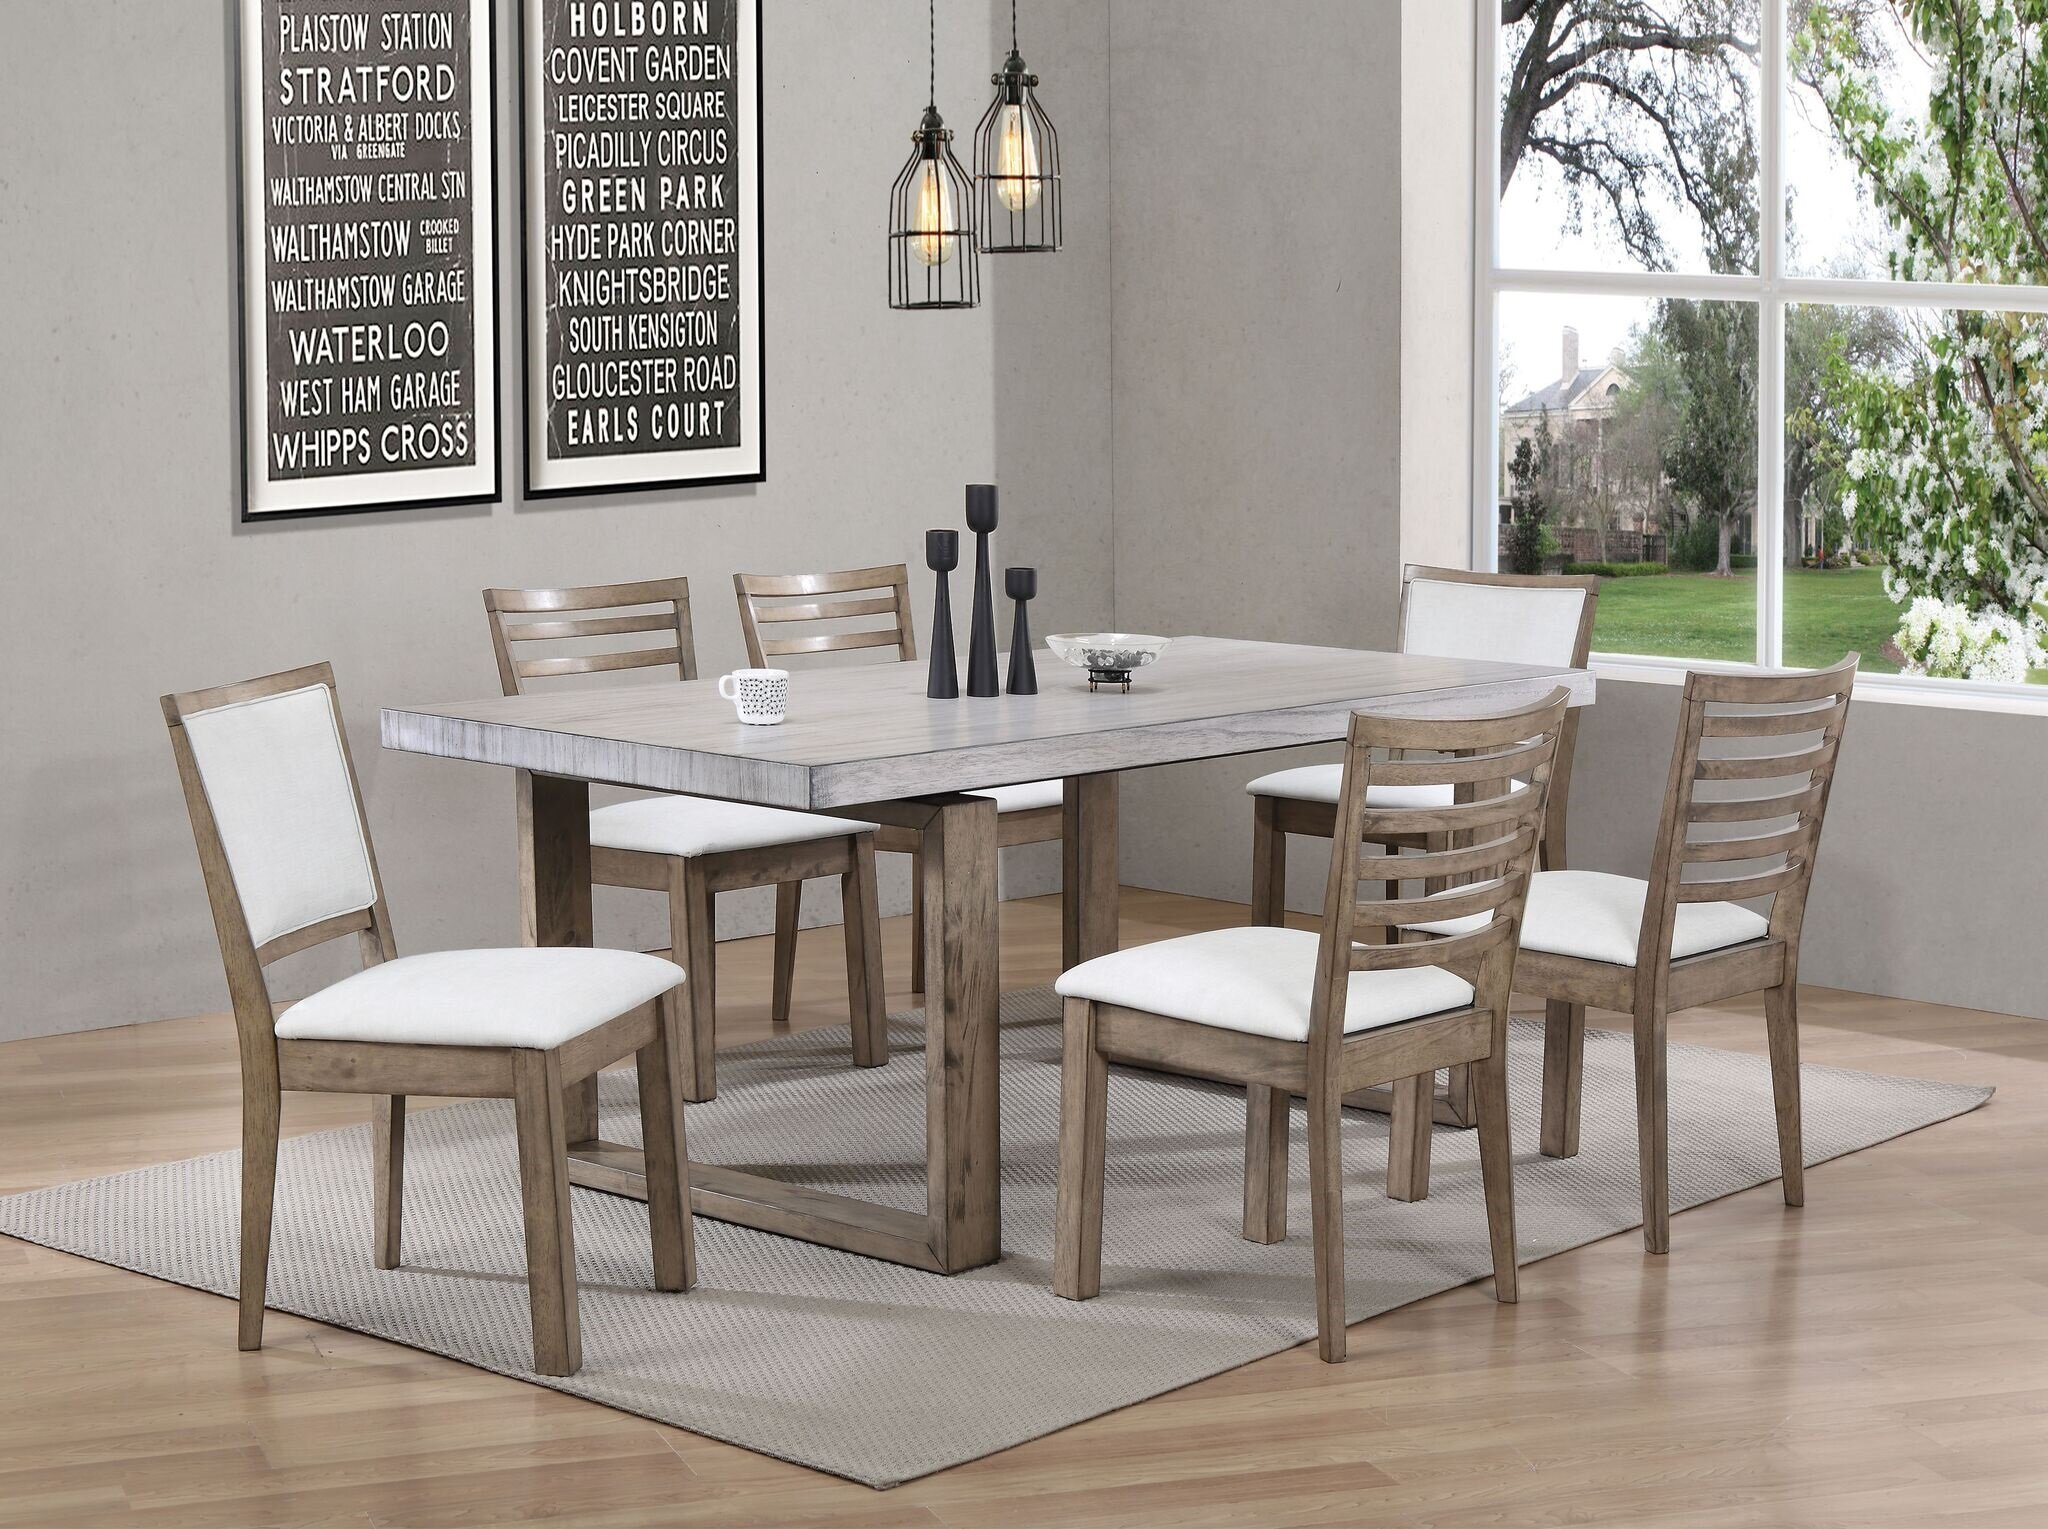 b6ae4f5bd4 Rosecliff Heights Cleveland 7 Piece Dining Set | Wayfair